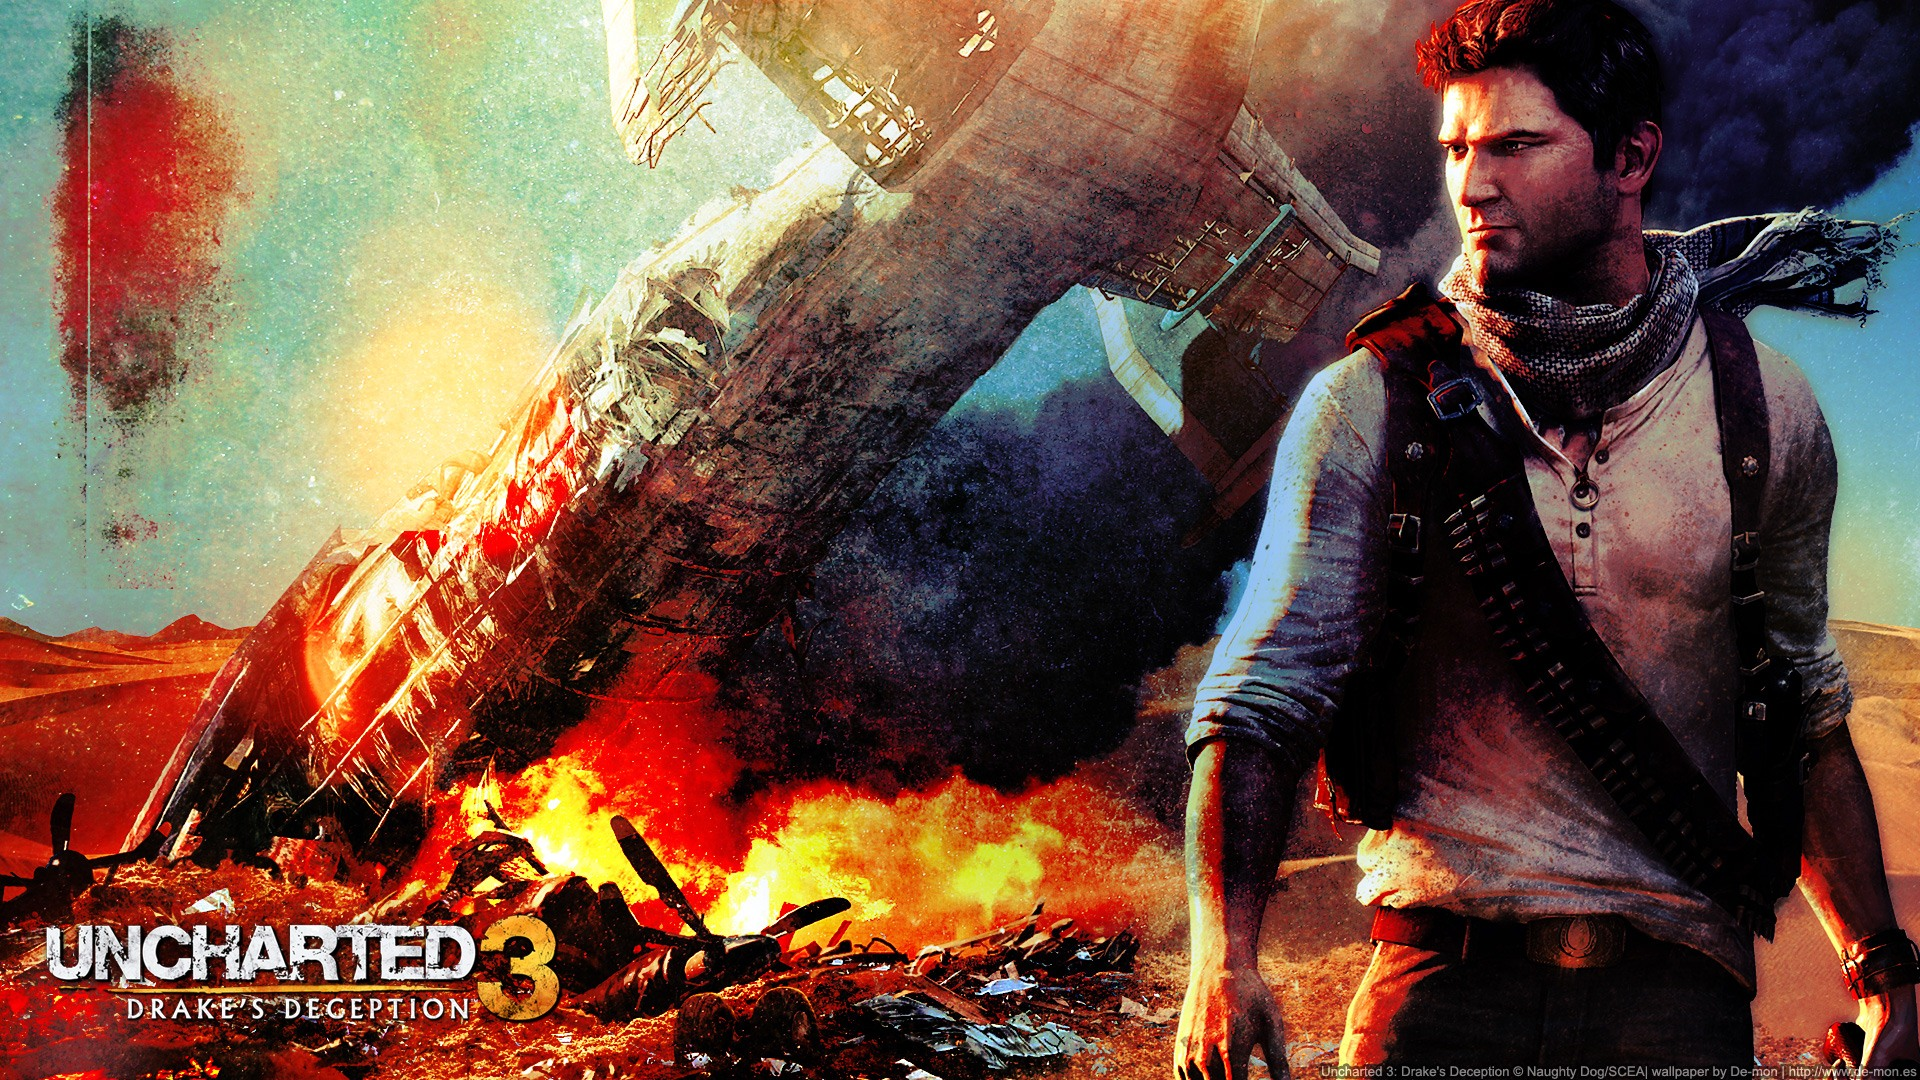 Uncharted 3 Wallpapers HD - WallpaperSafari Uncharted 3 Drakes Deception Wallpaper